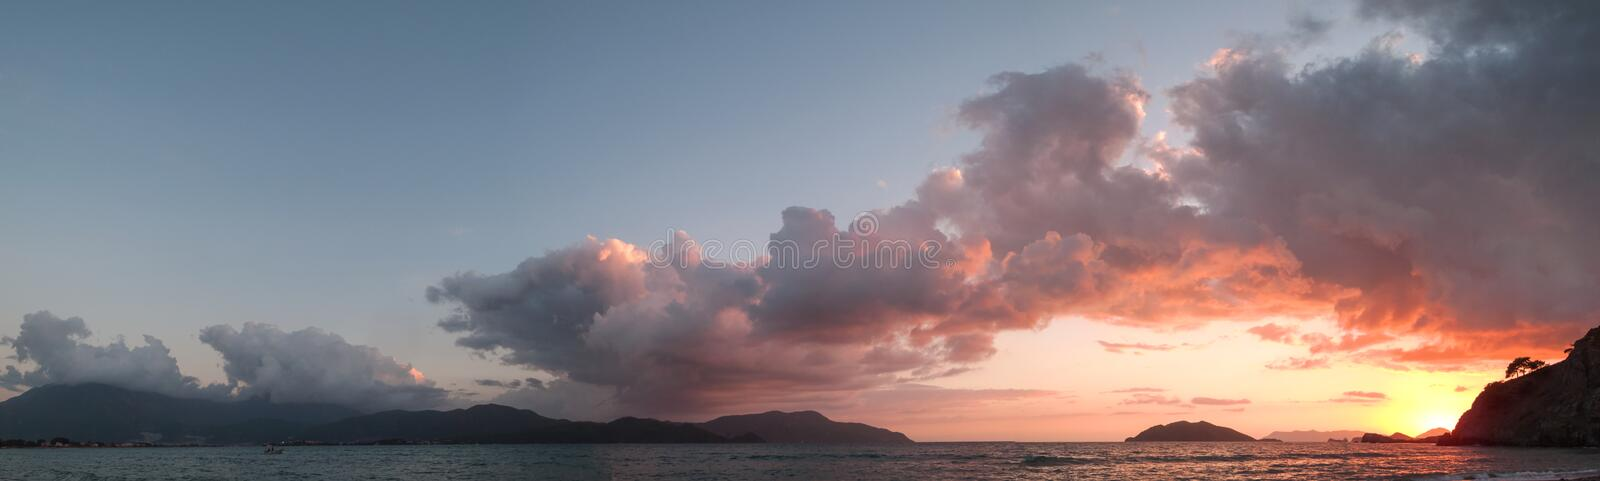 Photo evening sky. Panoramic photo evening sky with cumulus clouds, sunset with sea stock image